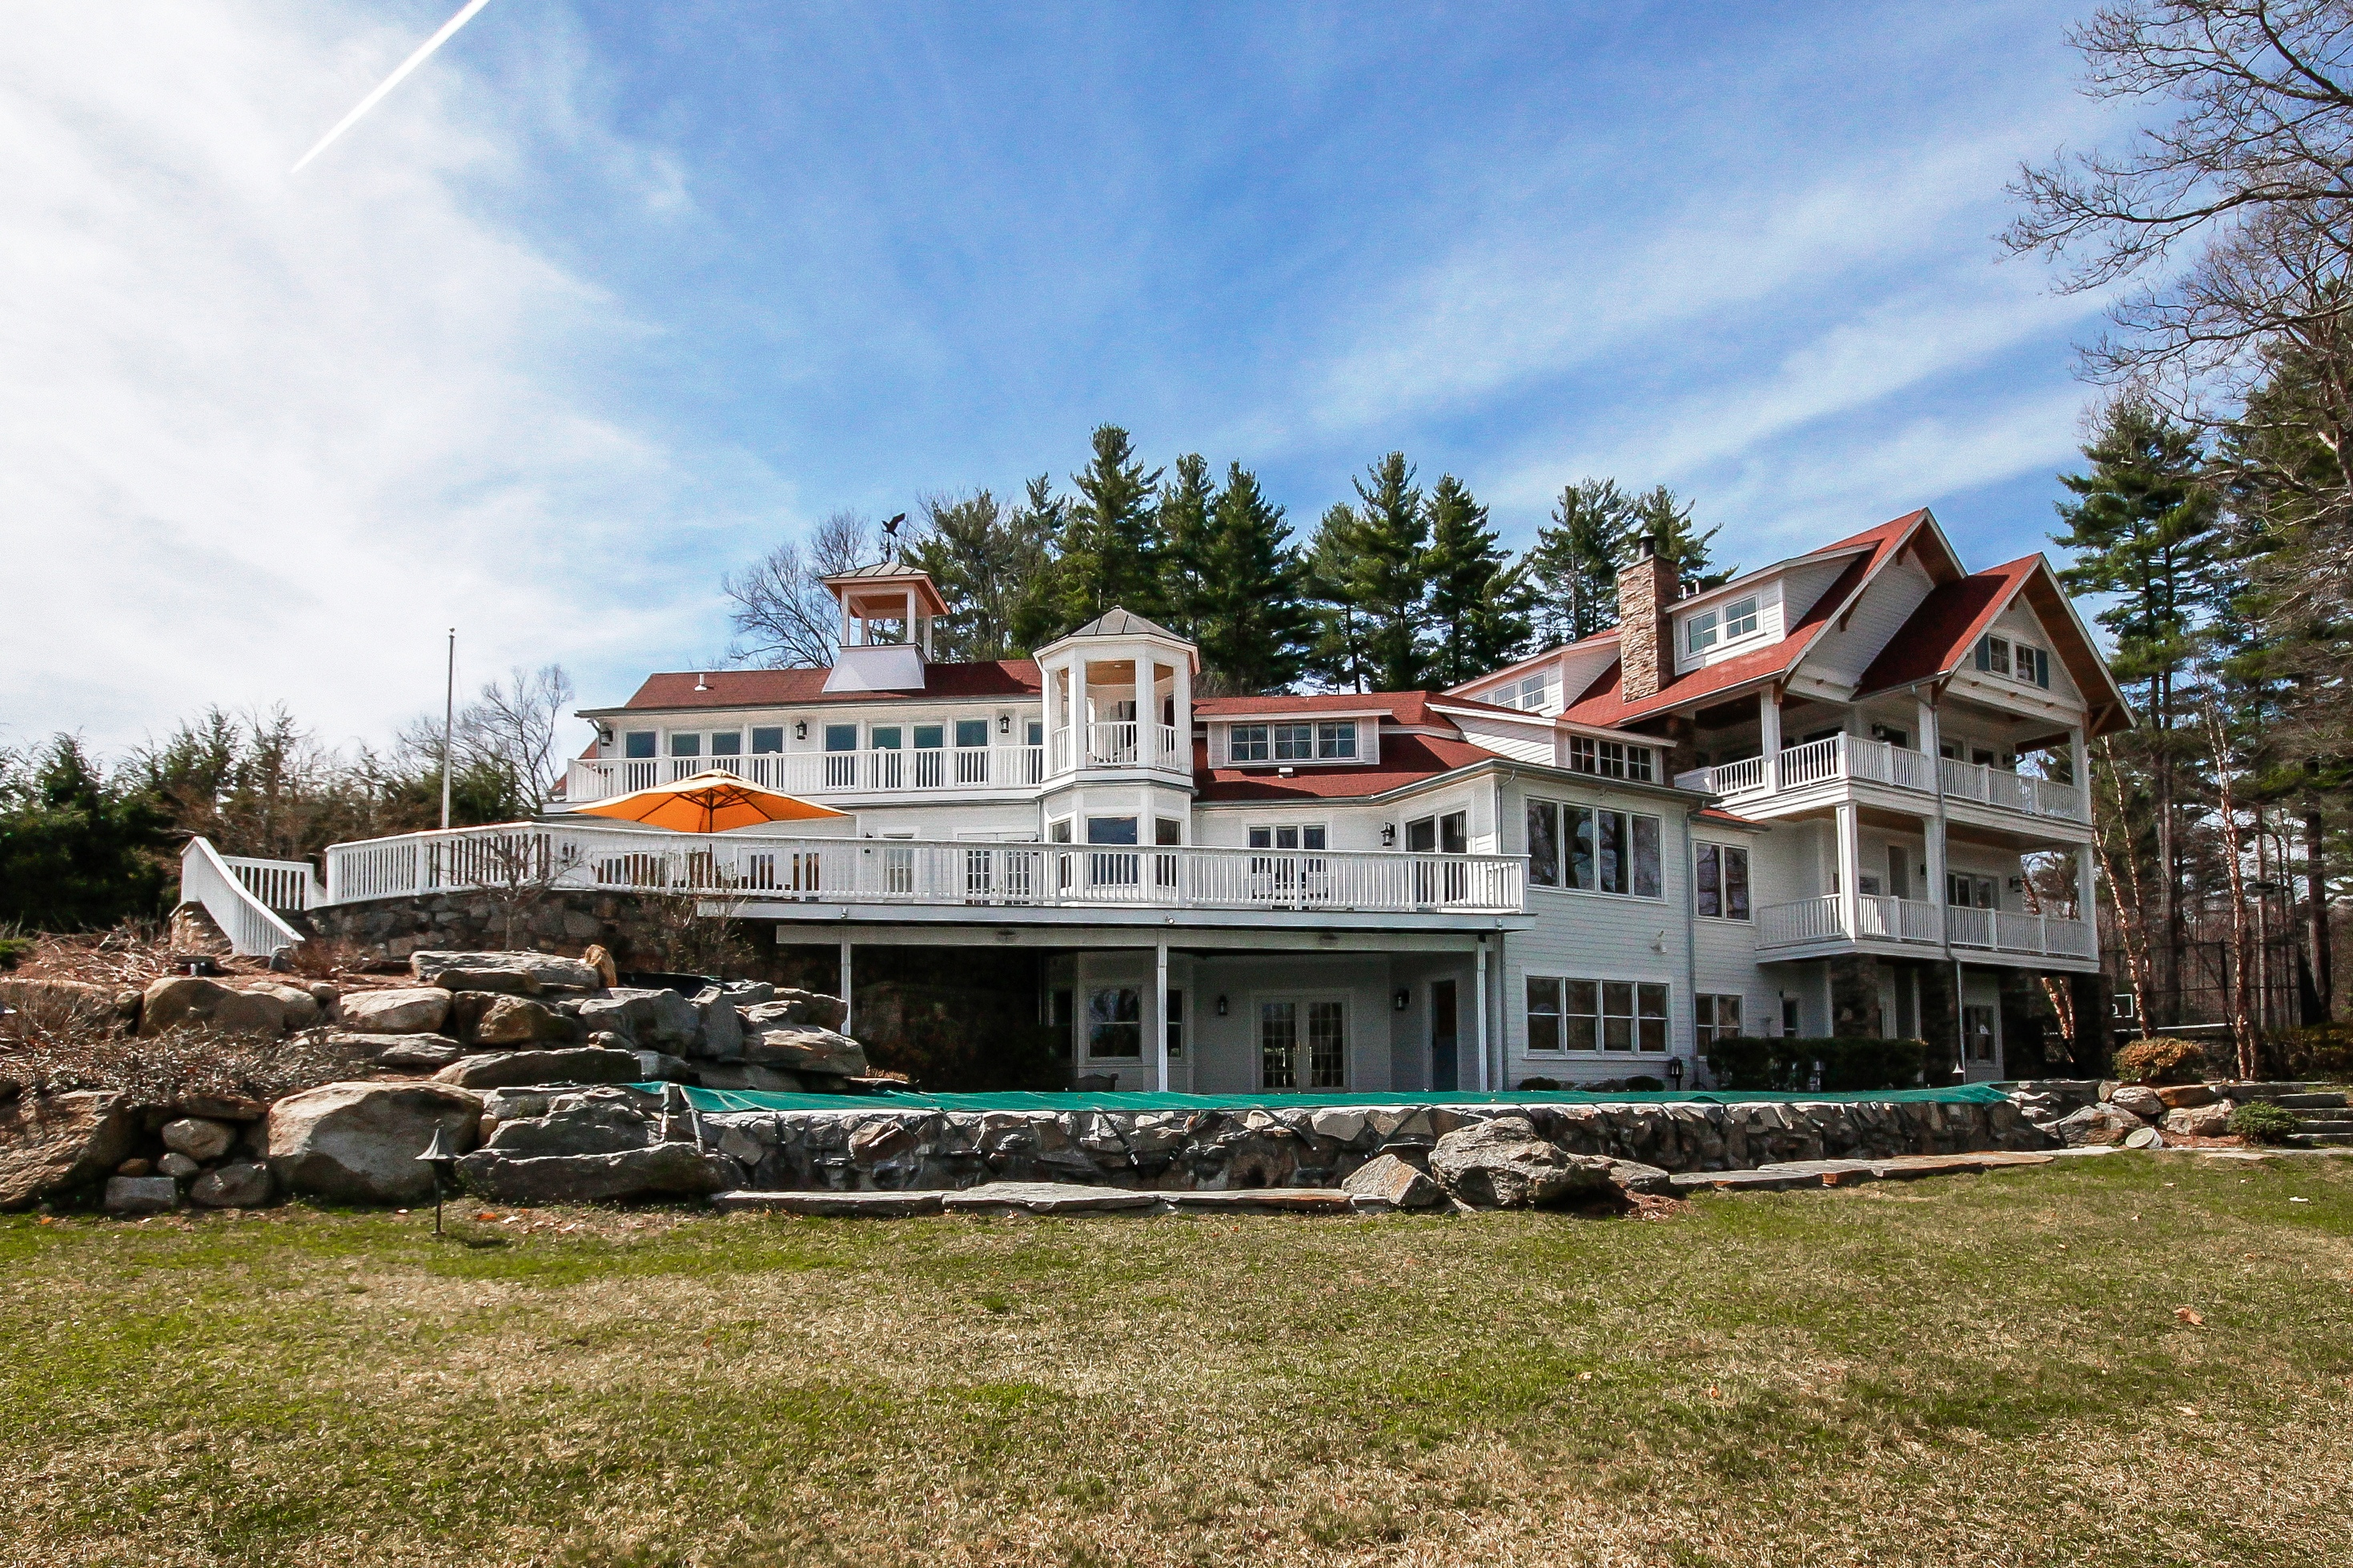 Single Family Home for Sale at Spectacular Sweeping Waterfront Views 28 Deerfield Road Brookfield, Connecticut, 06804 United States